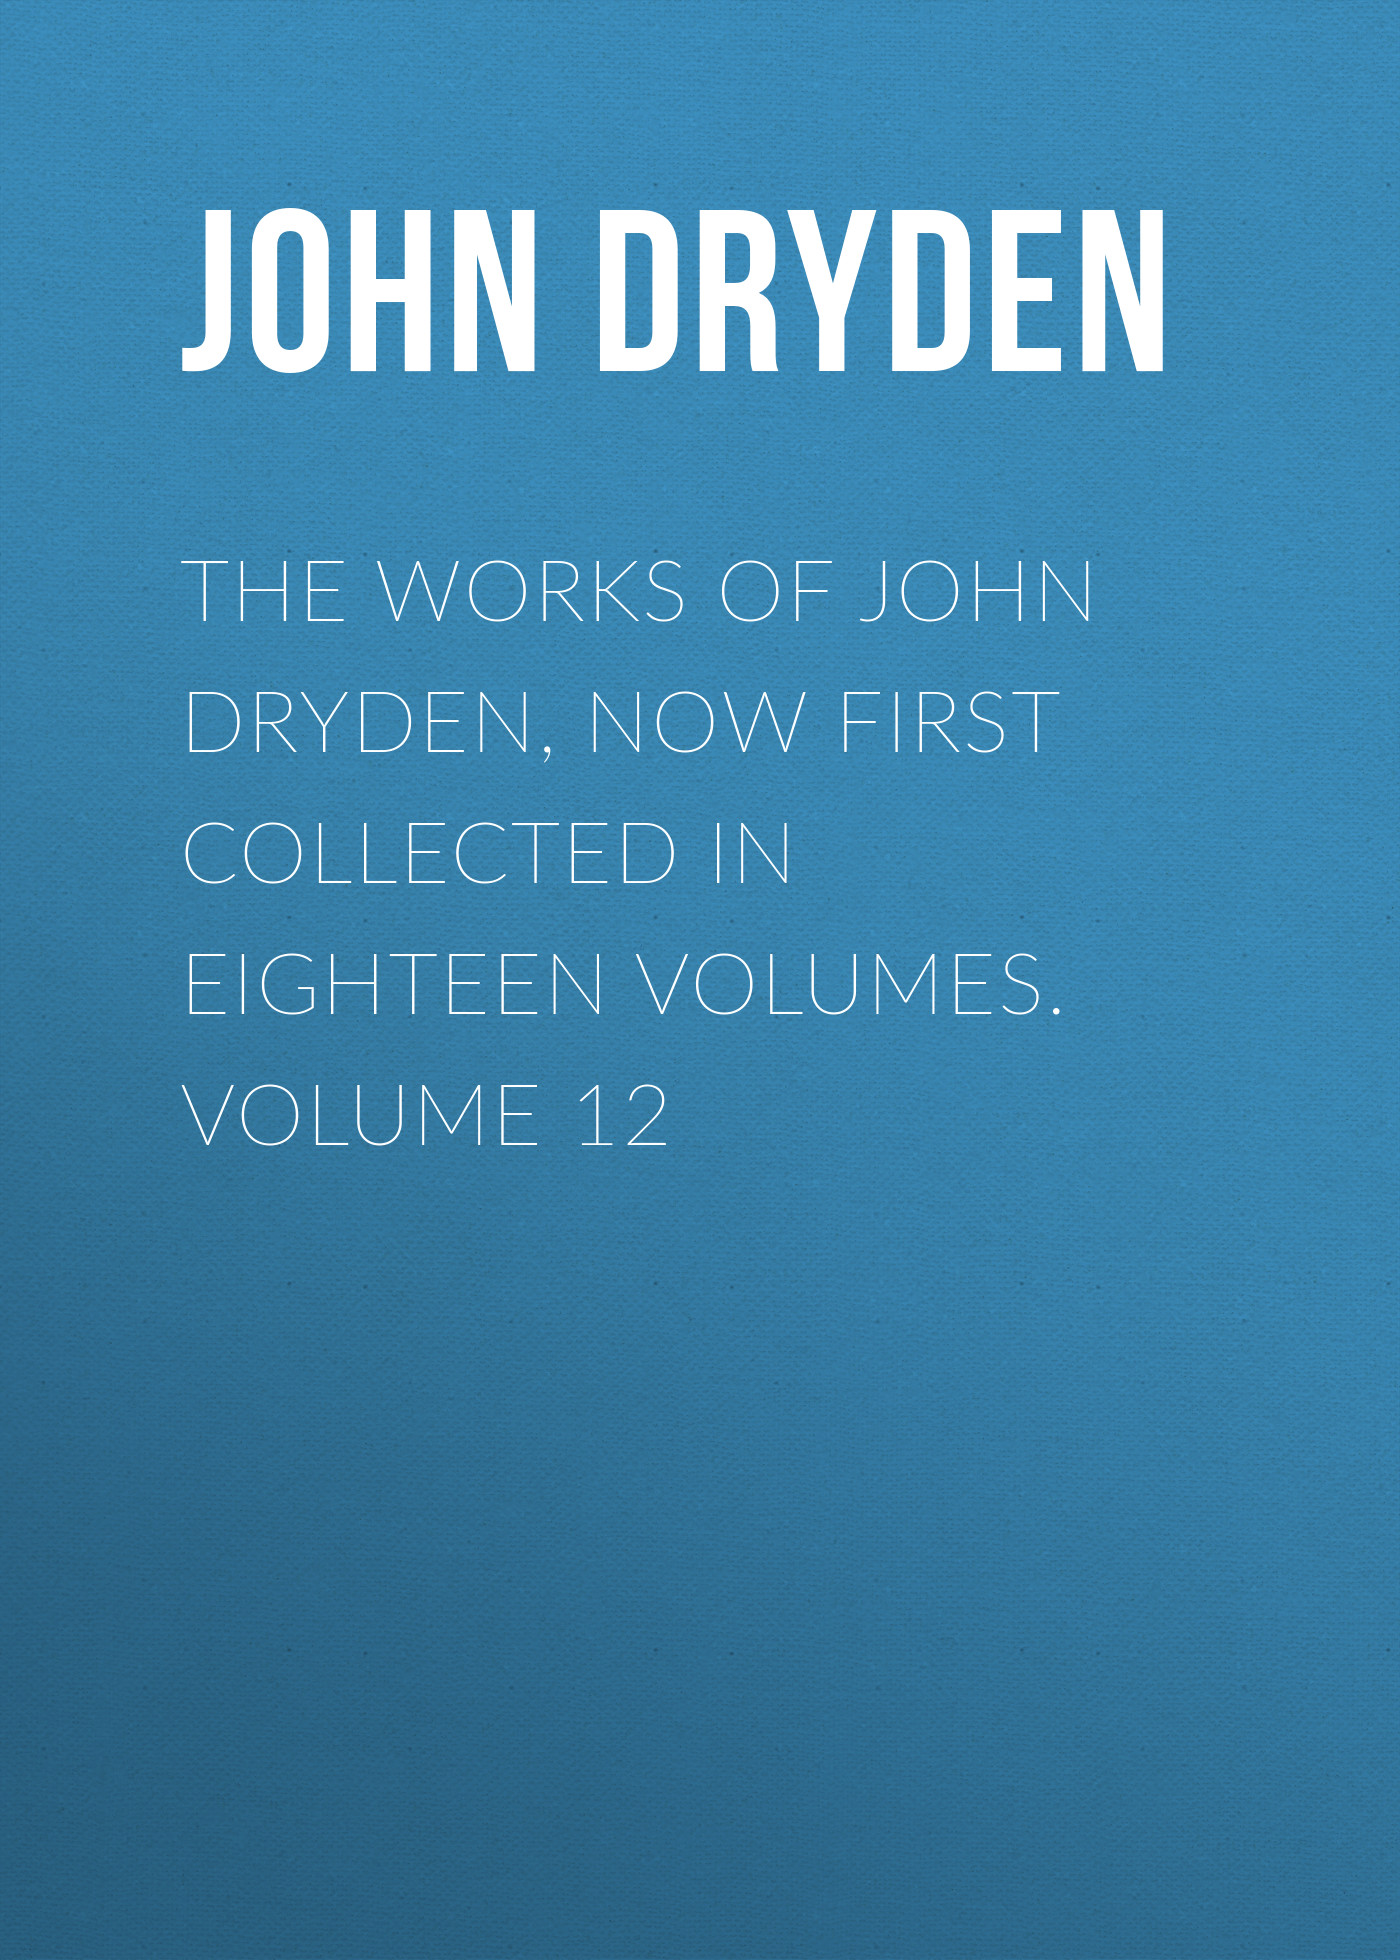 John Dryden The Works of John Dryden, now first collected in eighteen volumes. Volume 12 skinbox 4people чехол для asus zenfone 4 a450cg white